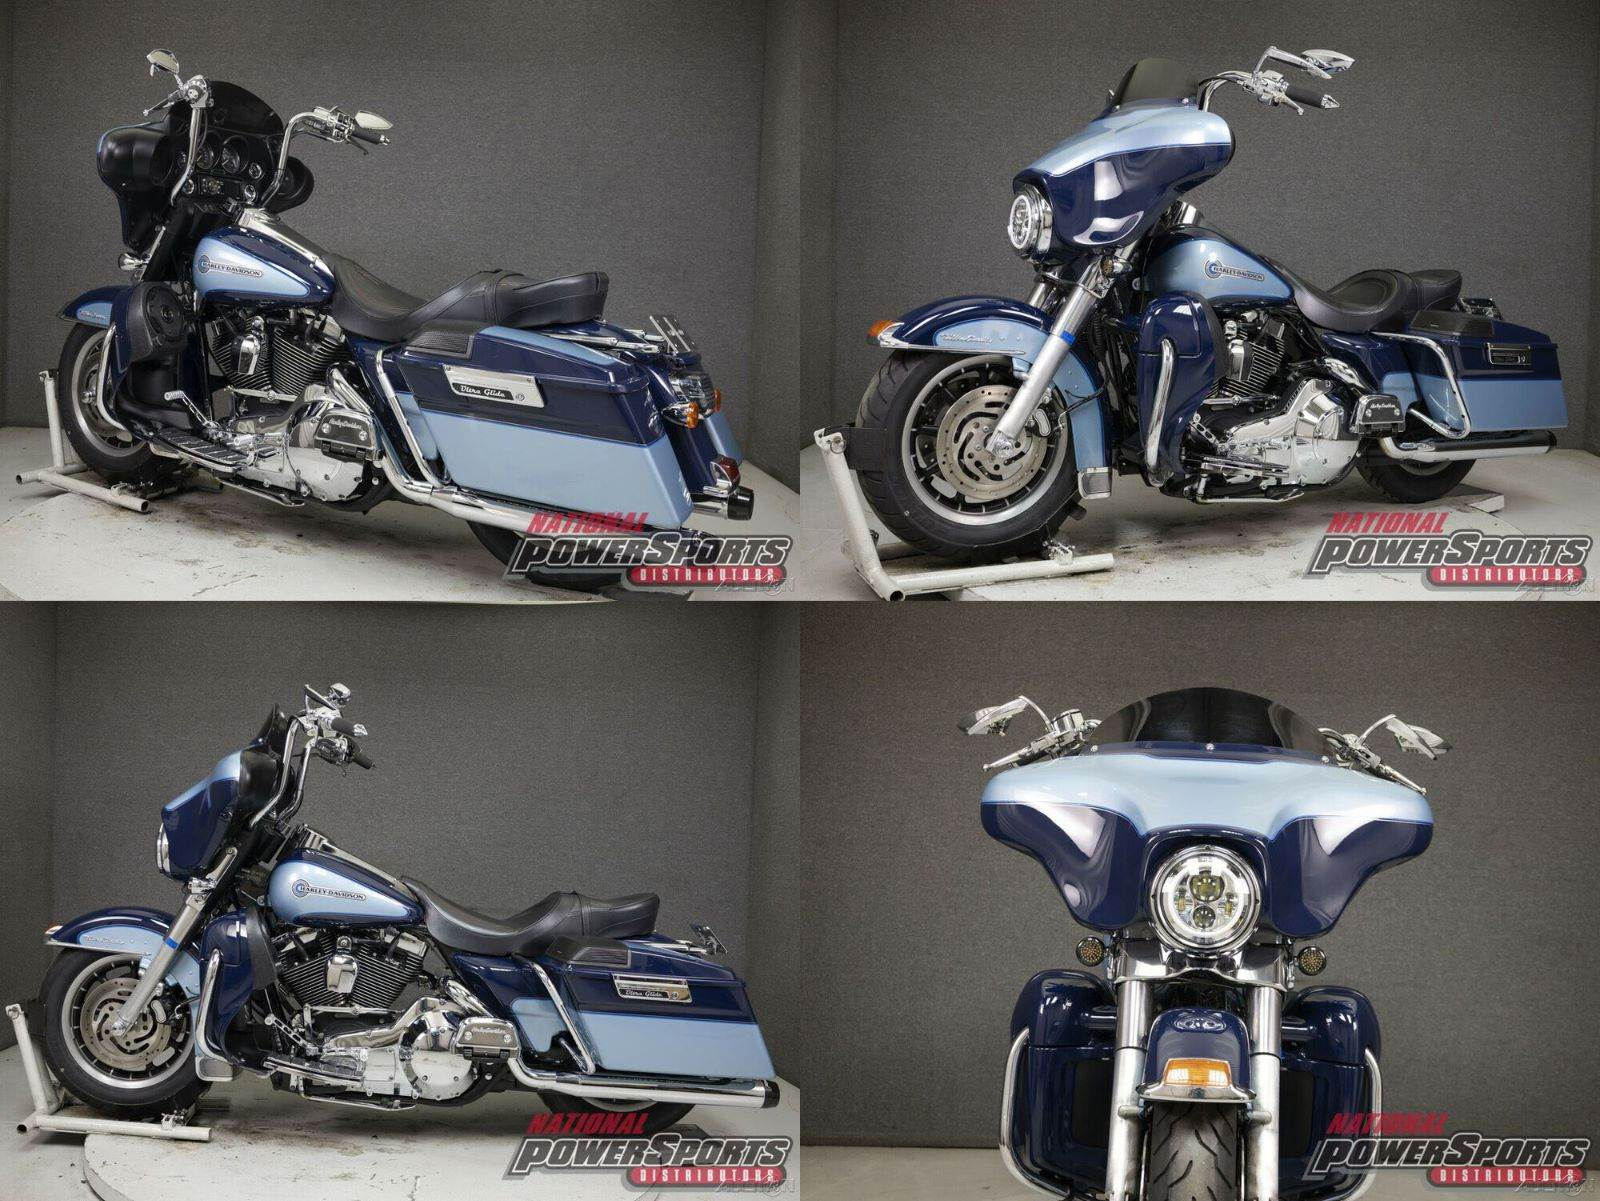 2005 Harley-Davidson Touring 2-TONE BLUE used for sale near me